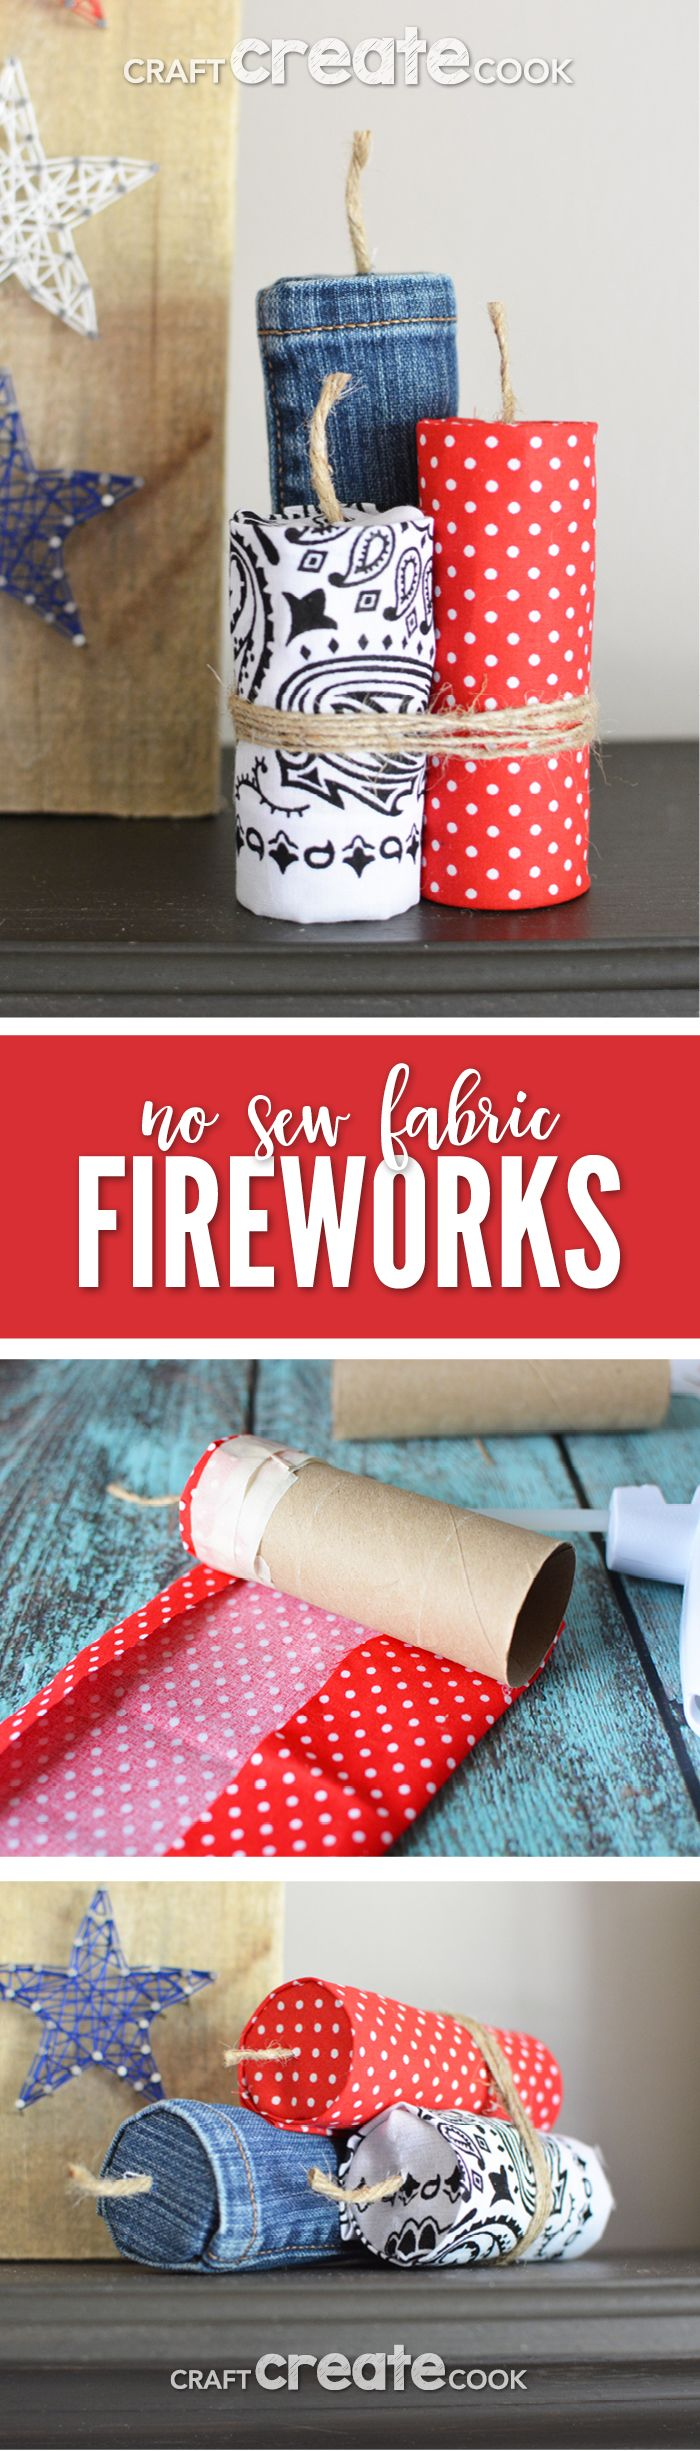 My no sew fabric firework craft is a quick and easy project to add some patriotism to your home decor. via @CraftCreatCook1